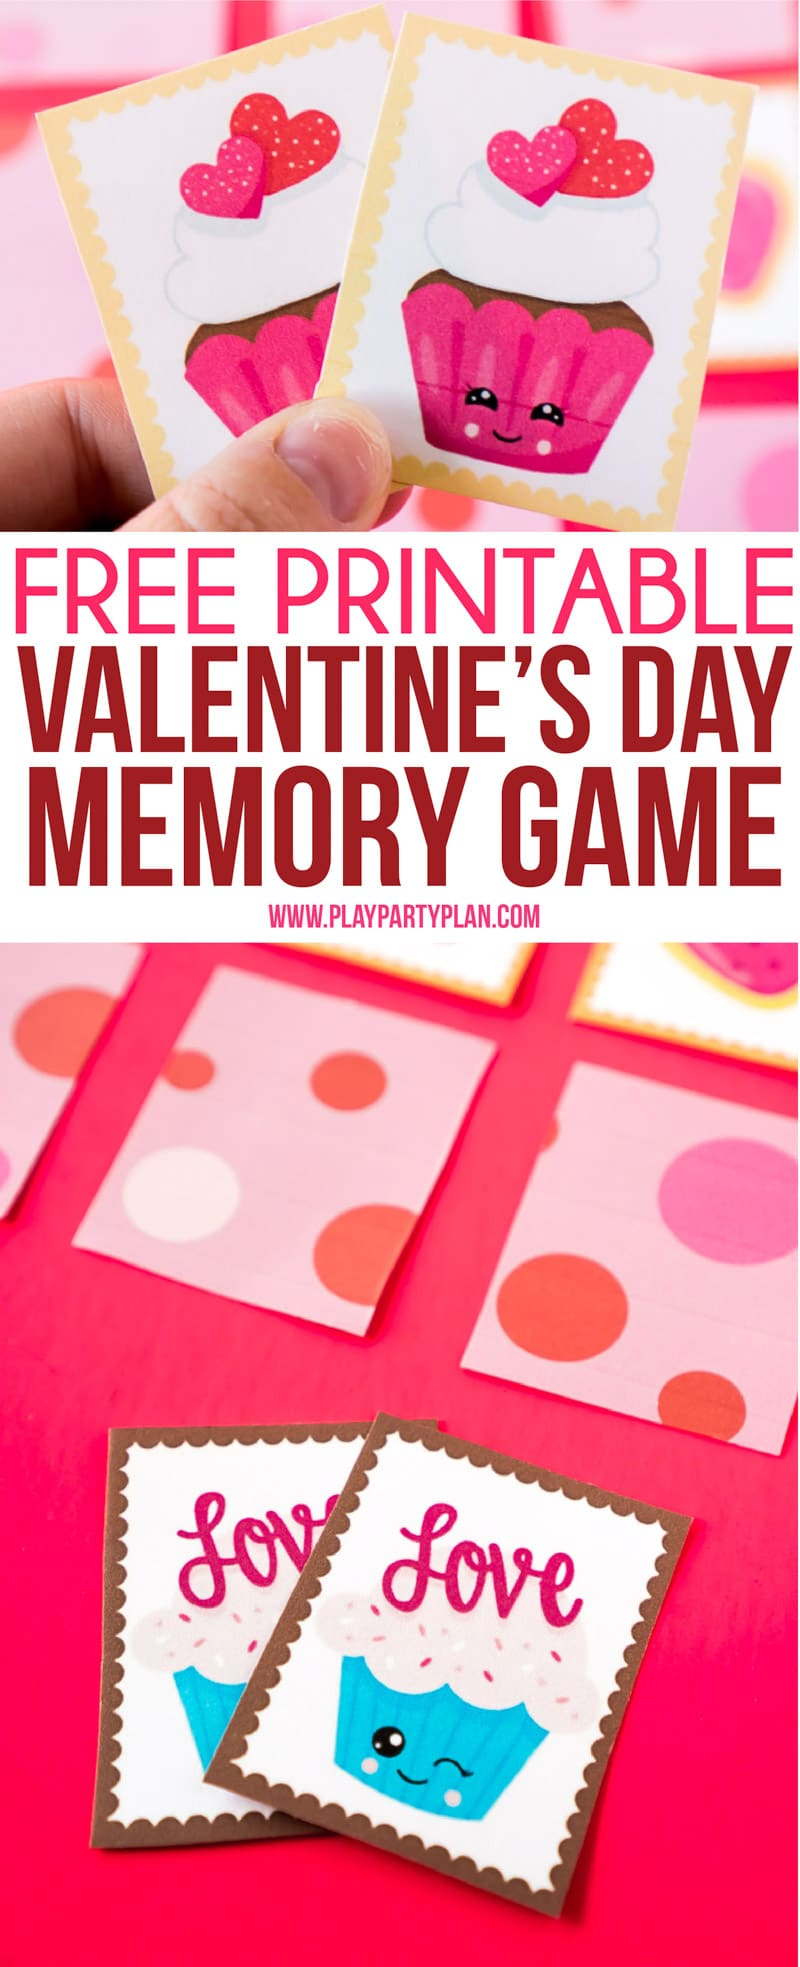 graphic regarding Printable Memory Games for Seniors named Totally free Printable Valentines Working day Memory Video games for Small children - Participate in